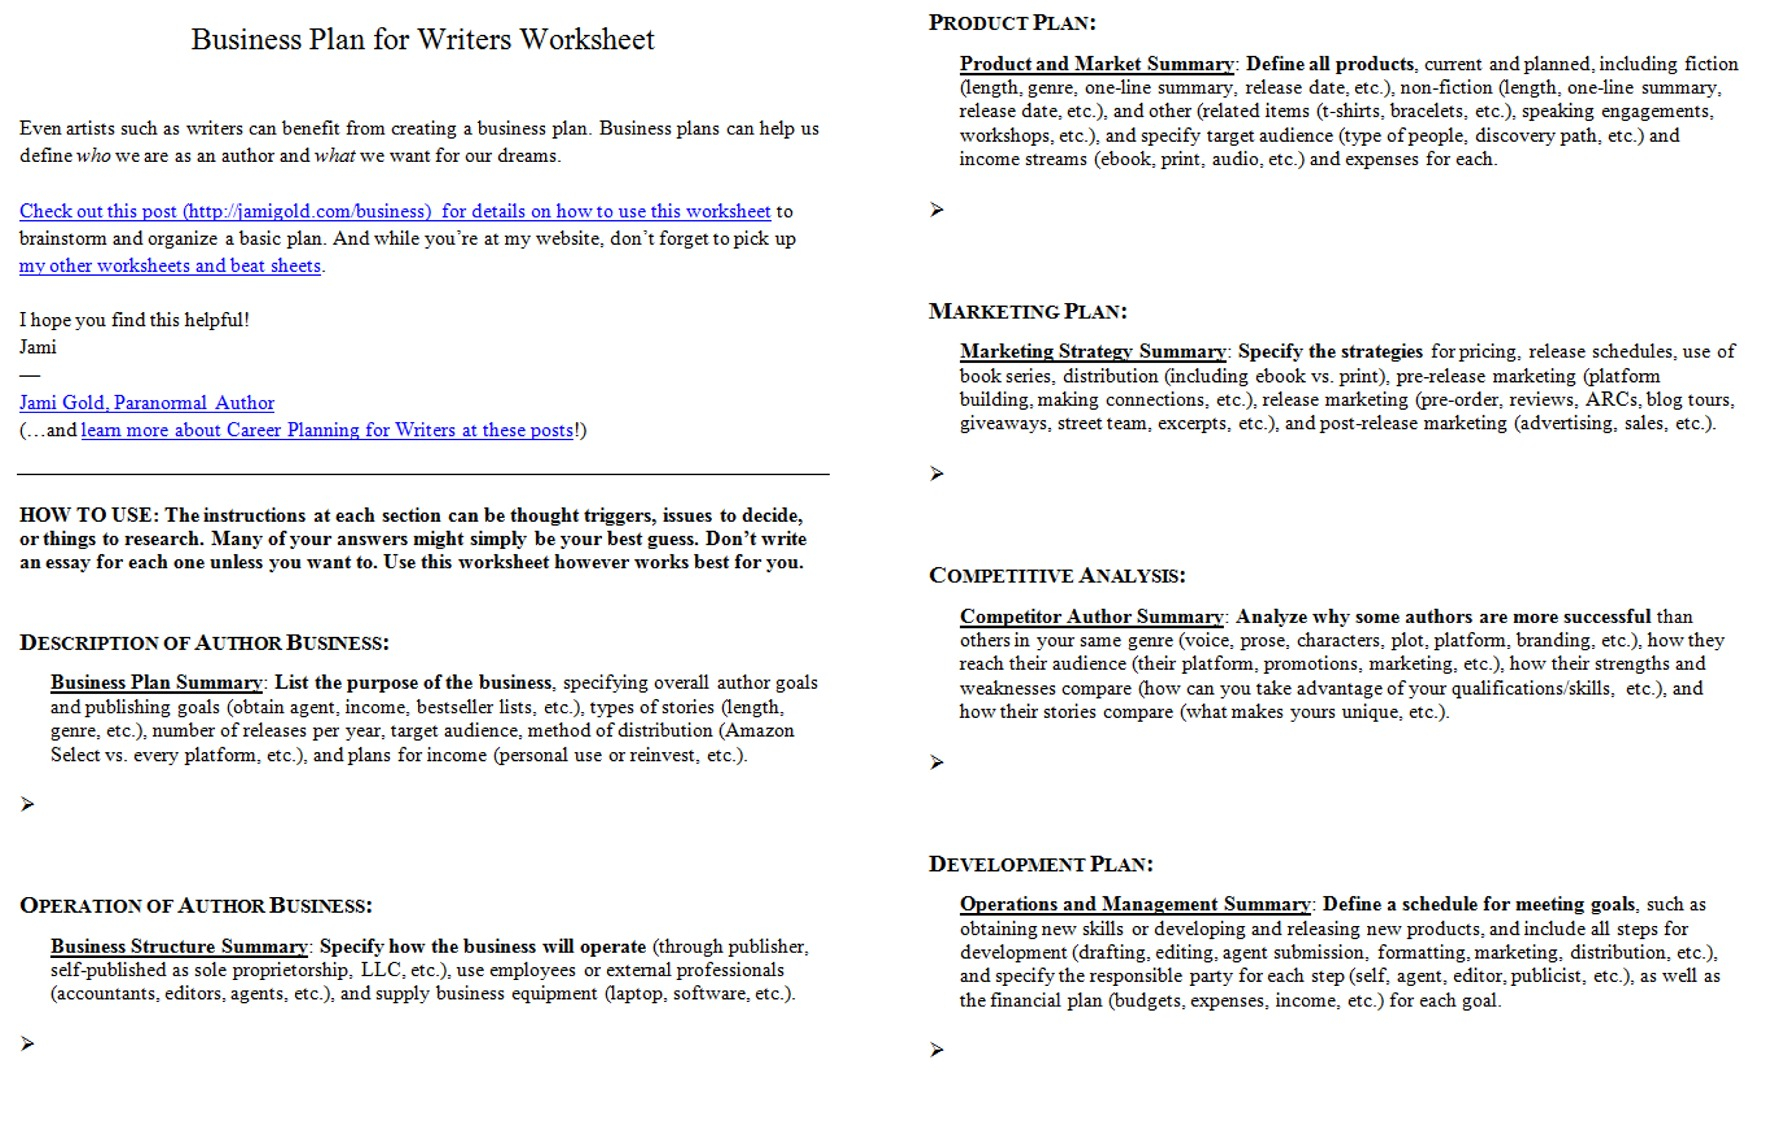 Weirdmailus  Pretty Worksheets For Writers  Jami Gold Paranormal Author With Entrancing Screen Shot Of Both Pages Of The Business Plan For Writers Worksheet With Attractive Volume Worksheets Th Grade Also Science For Th Graders Worksheets In Addition Form  Credit Limit Worksheet And Th Grade Math Worksheets Algebra As Well As Math Worksheets For Kindergarten And First Grade Additionally Spelling Power Worksheets From Jamigoldcom With Weirdmailus  Entrancing Worksheets For Writers  Jami Gold Paranormal Author With Attractive Screen Shot Of Both Pages Of The Business Plan For Writers Worksheet And Pretty Volume Worksheets Th Grade Also Science For Th Graders Worksheets In Addition Form  Credit Limit Worksheet From Jamigoldcom